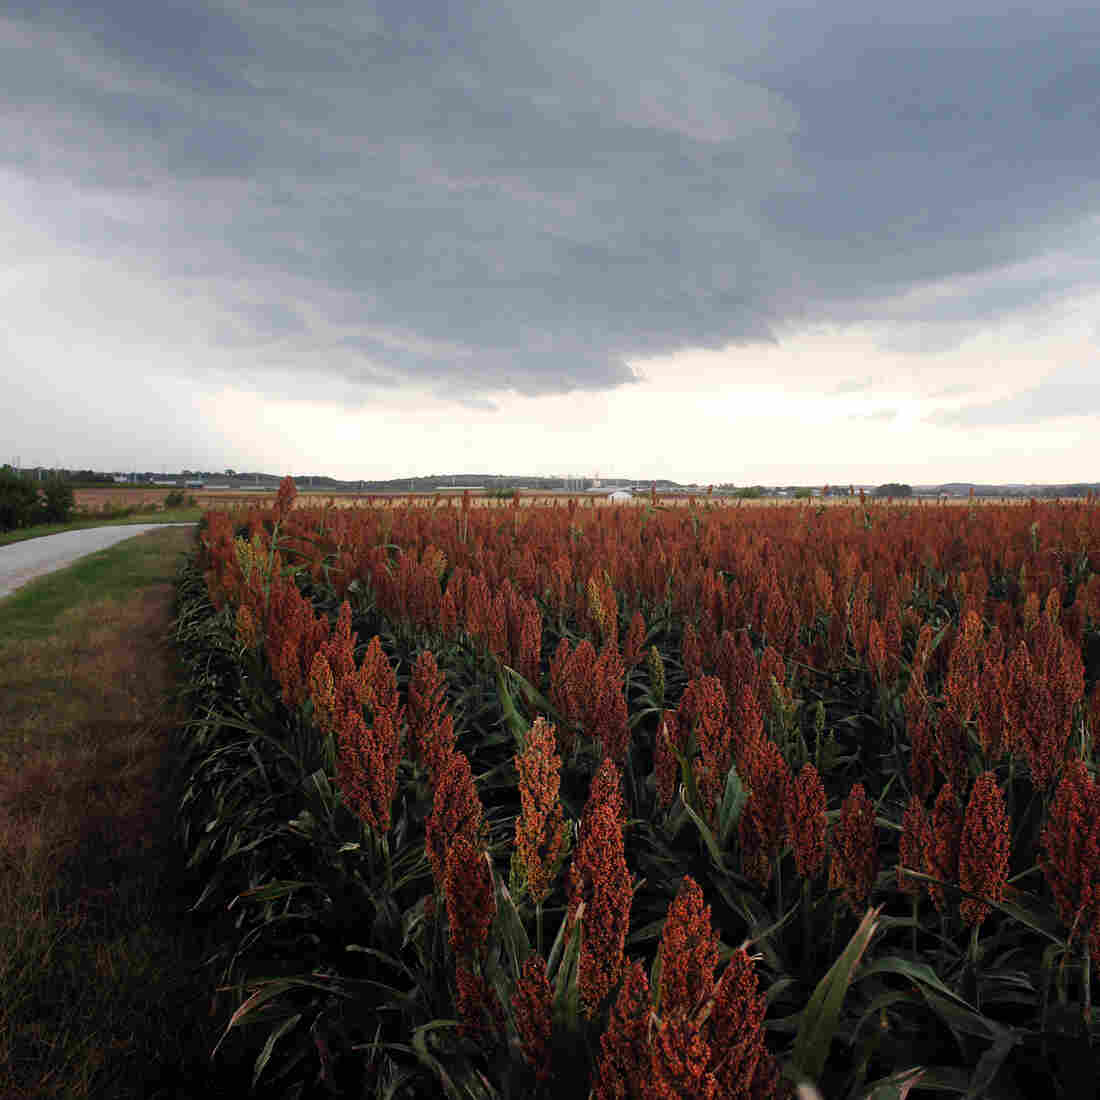 Heat, Drought Draw Farmers Back To Sorghum, The 'Camel Of Crops'